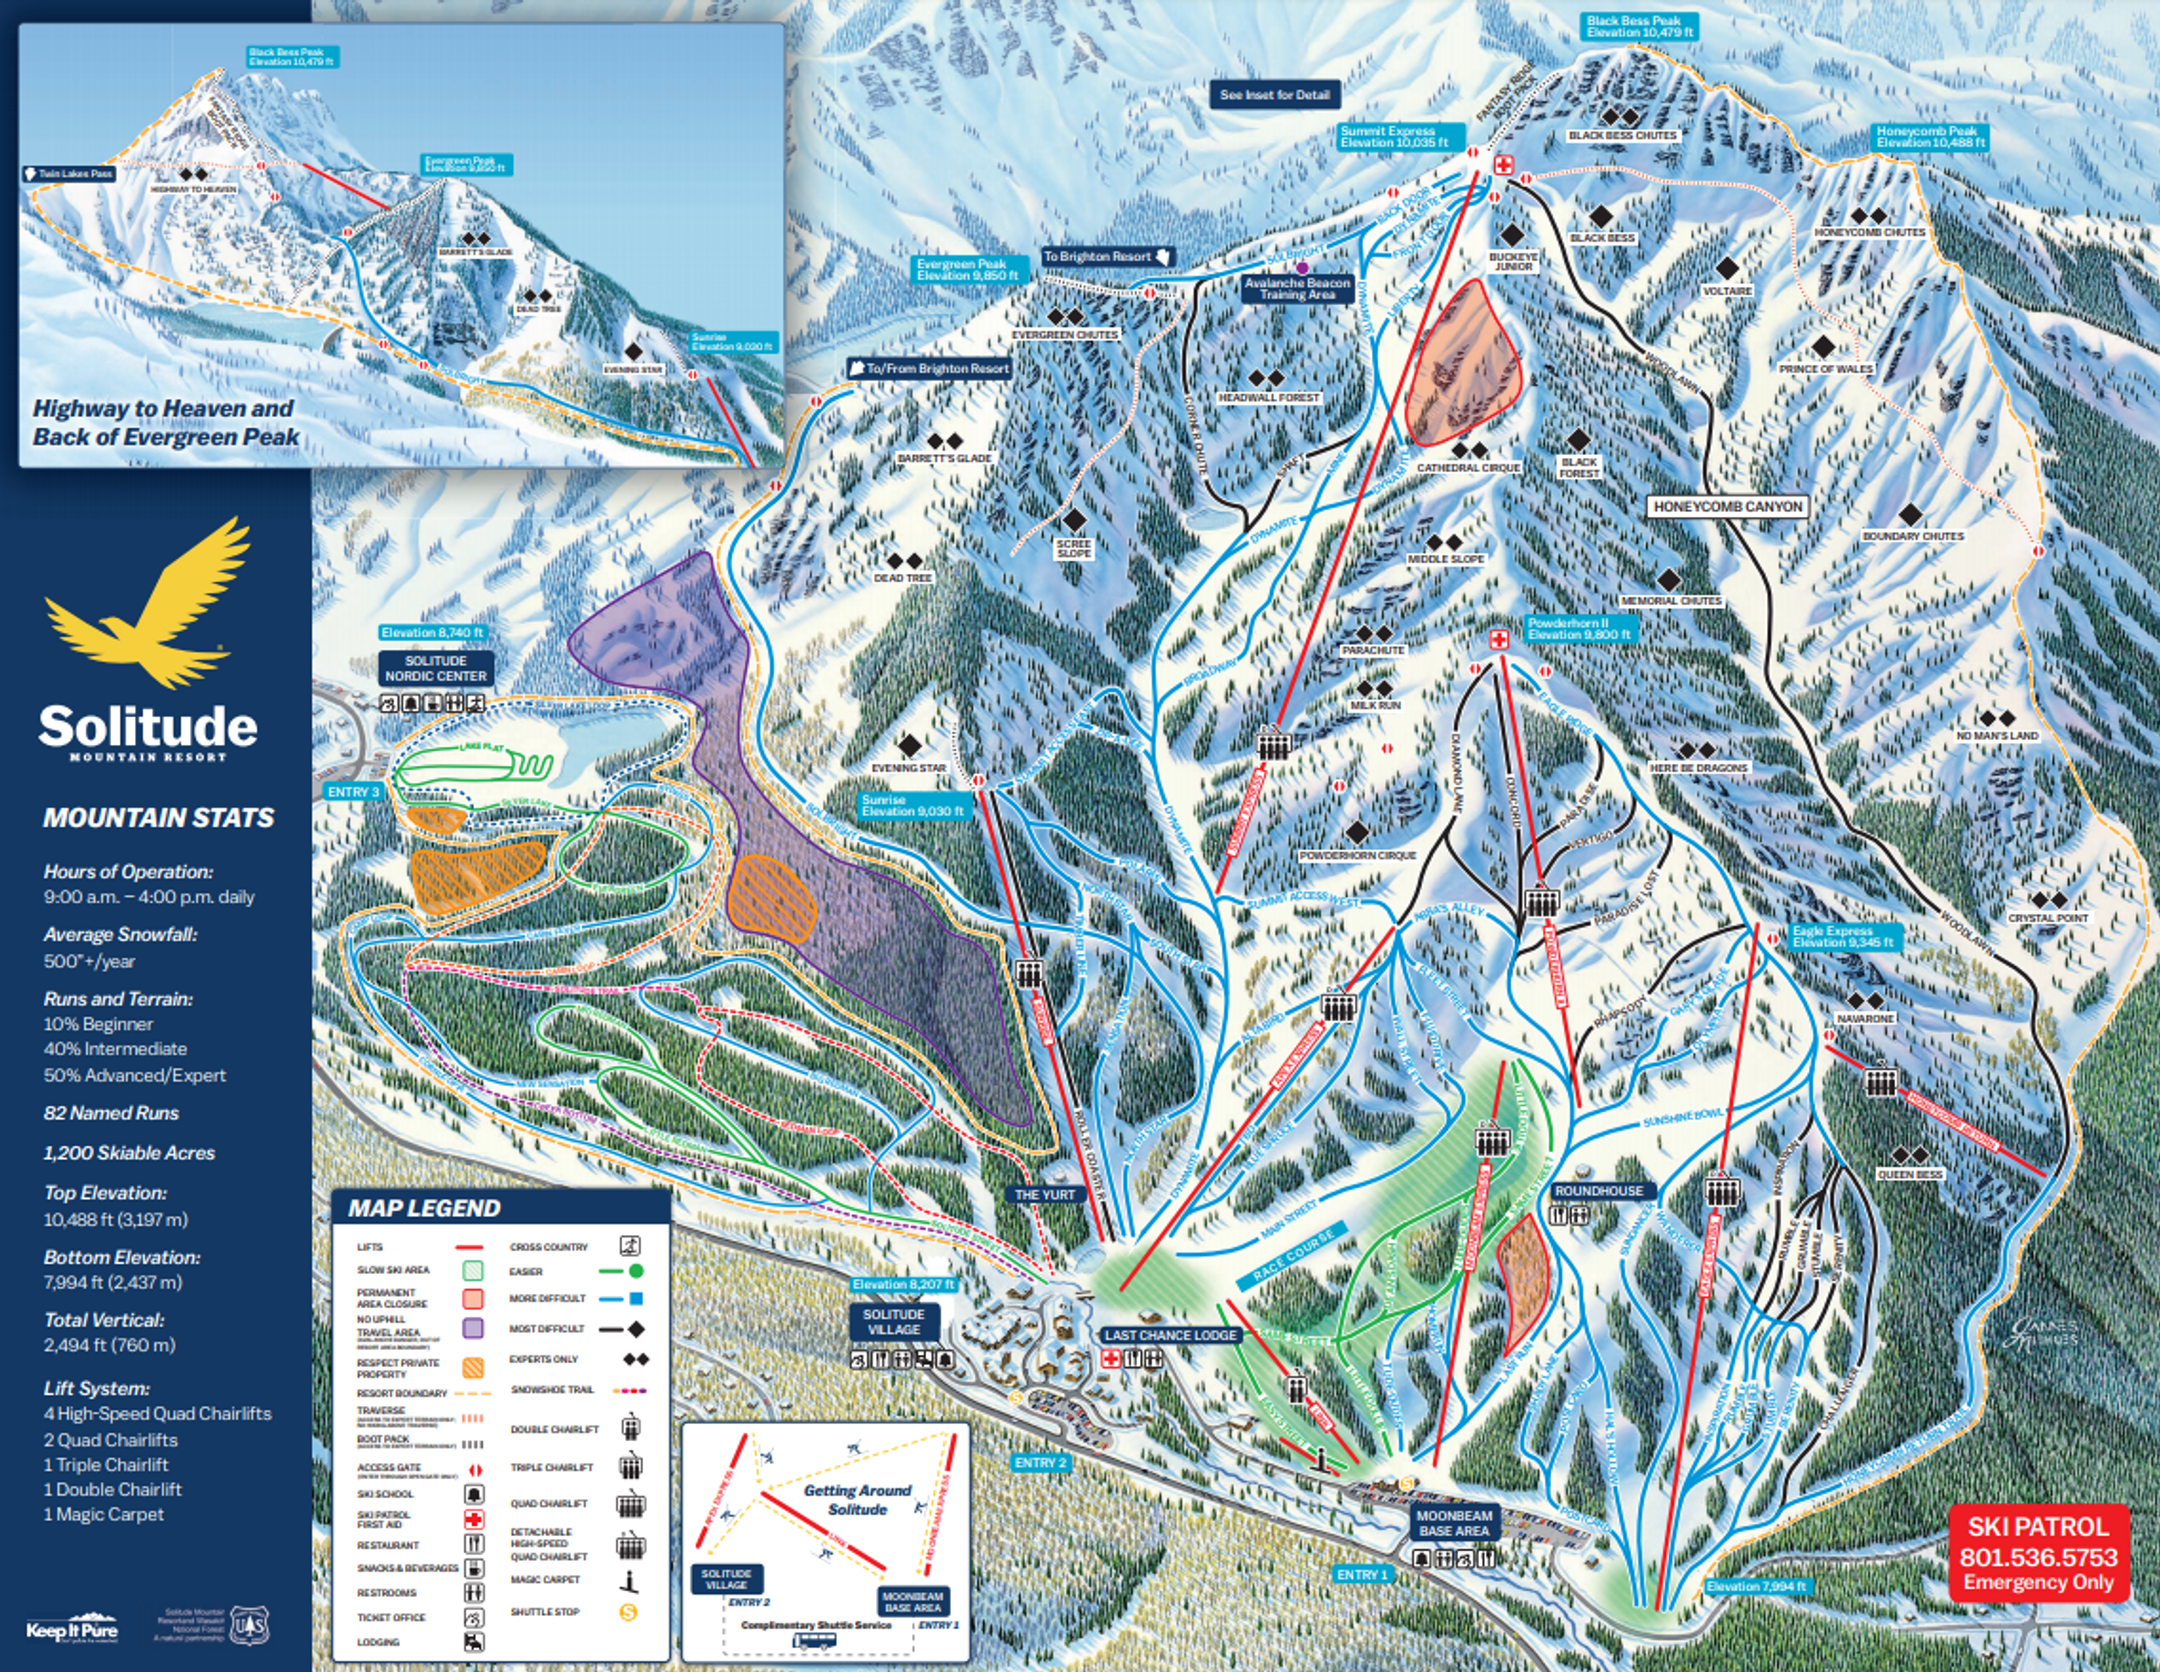 Solitude ski-resort-trail-map United States ripatrip